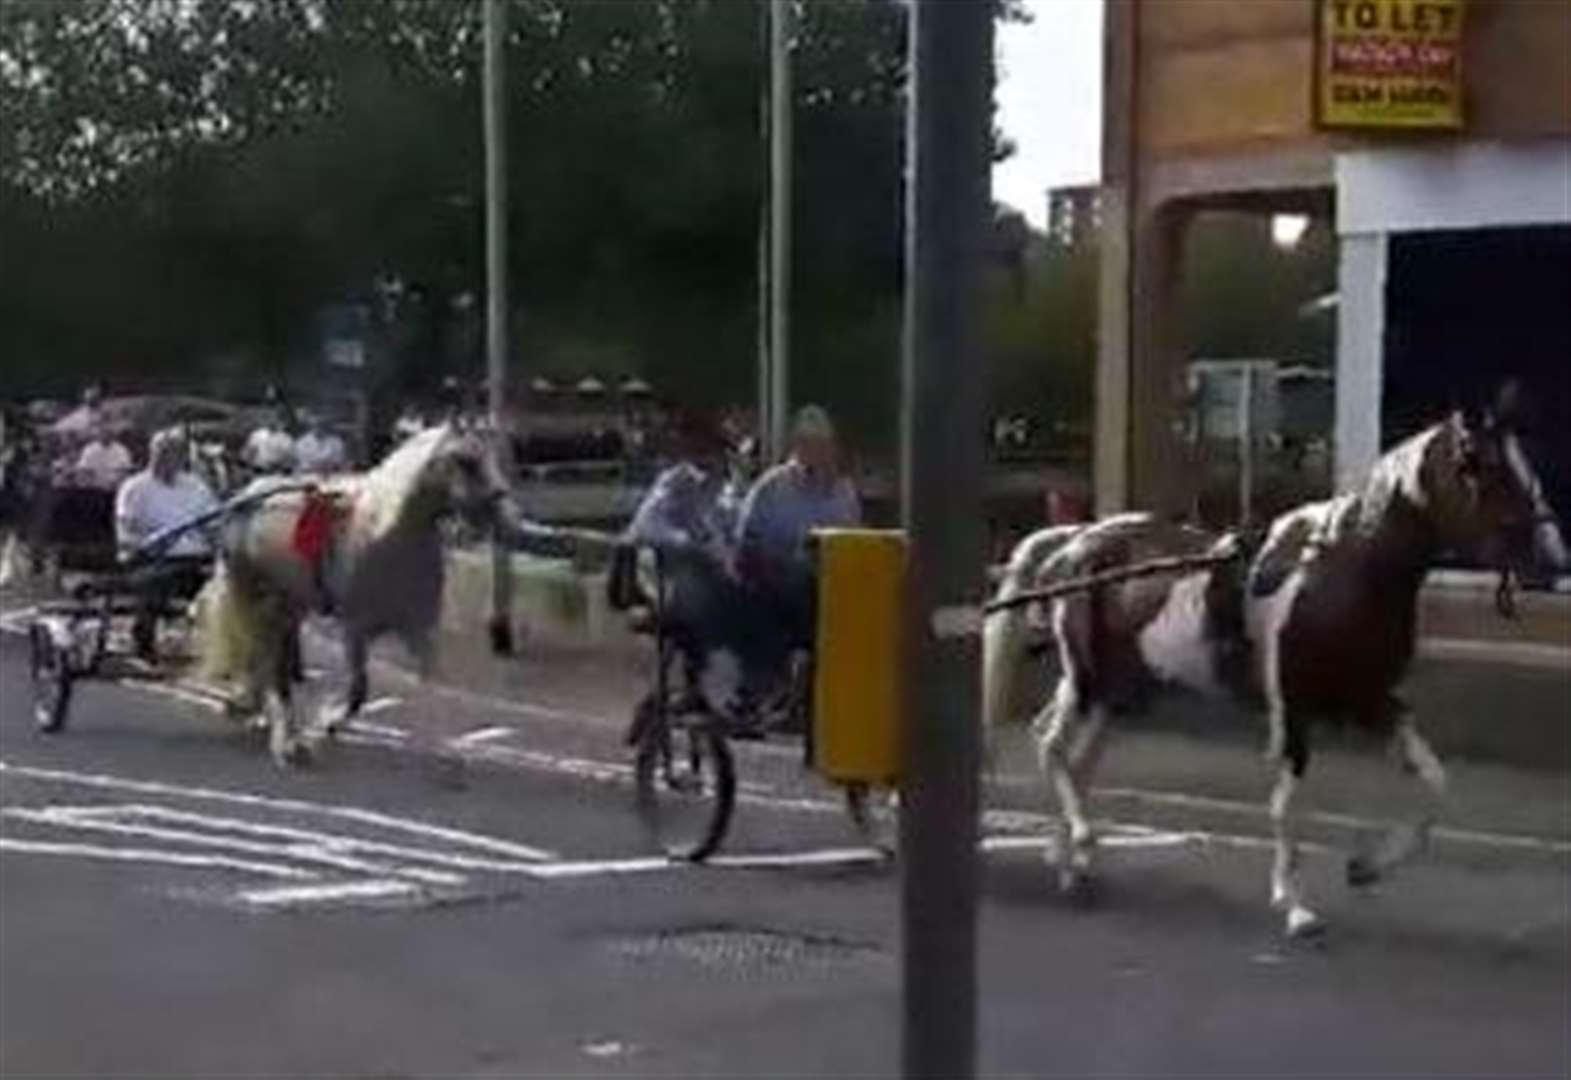 VIDEO: See the moment horses come clattering into busy High Street